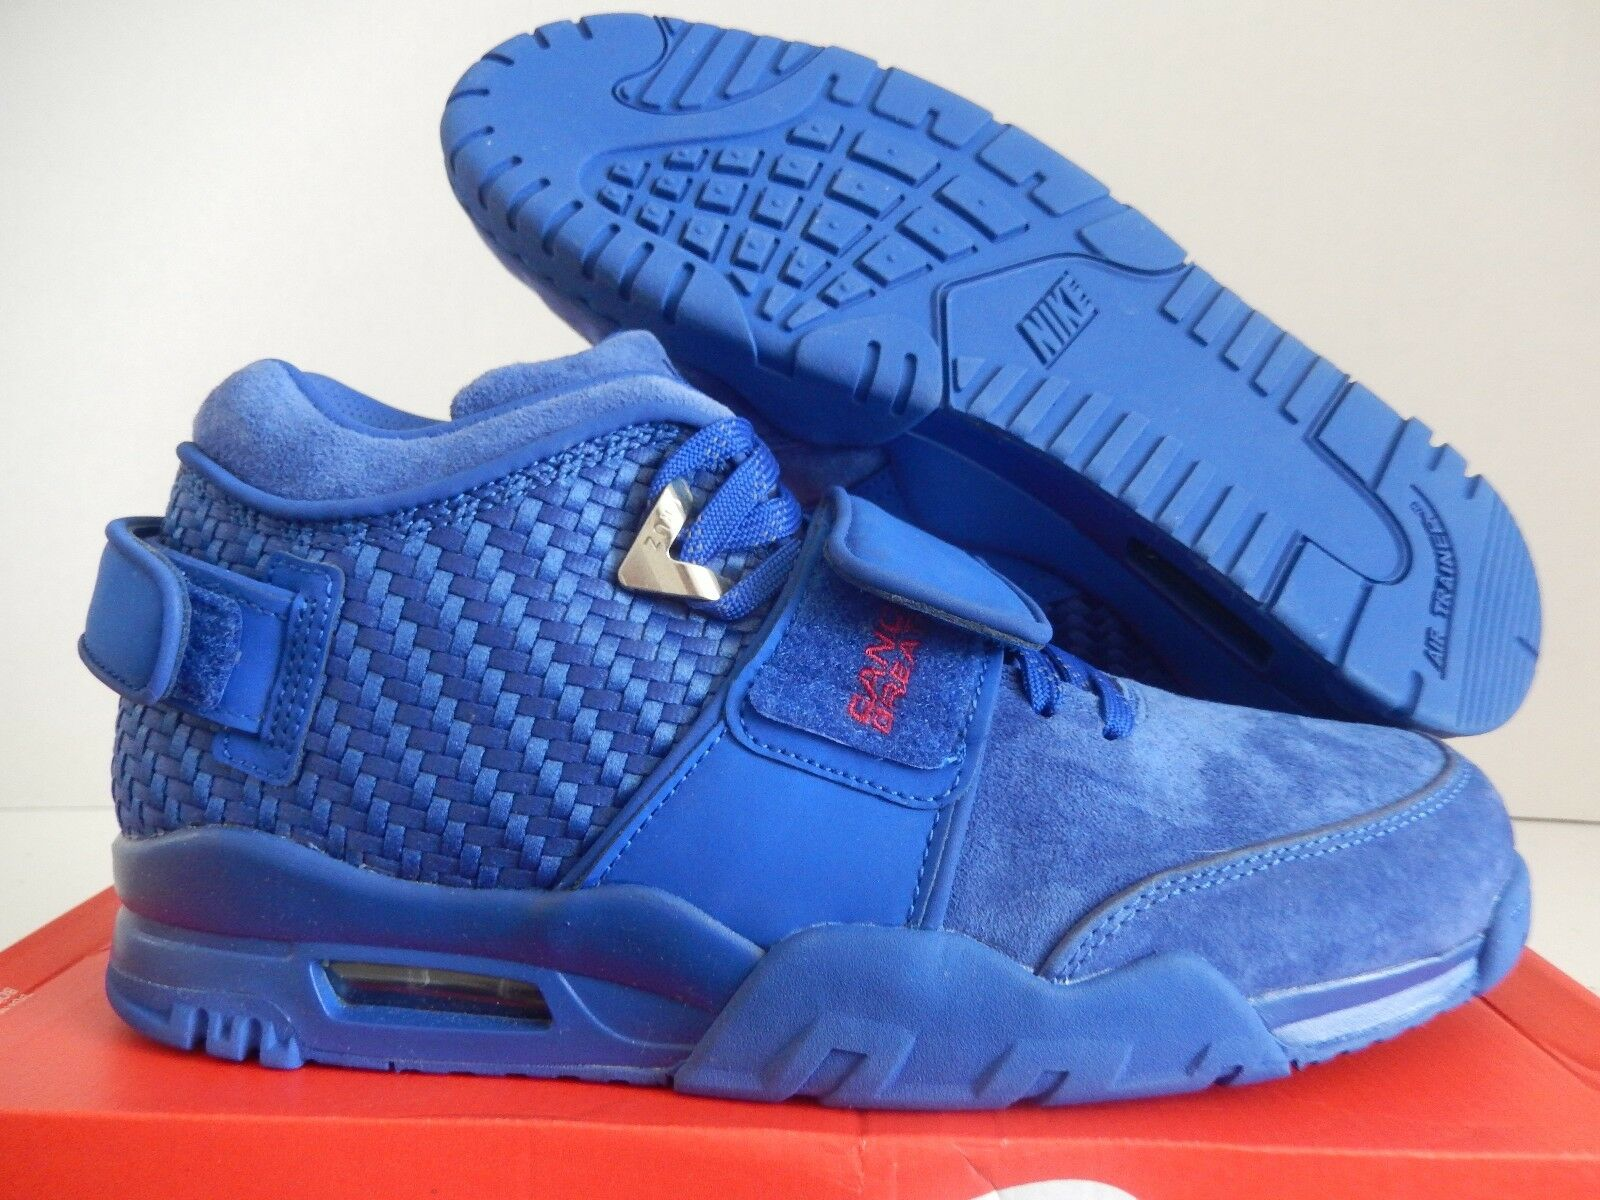 nike air tr. c. cruz pmr Bleu Bleu Bleu -gym premium rush Rouge  sz 11 [812637-400] 96fb85